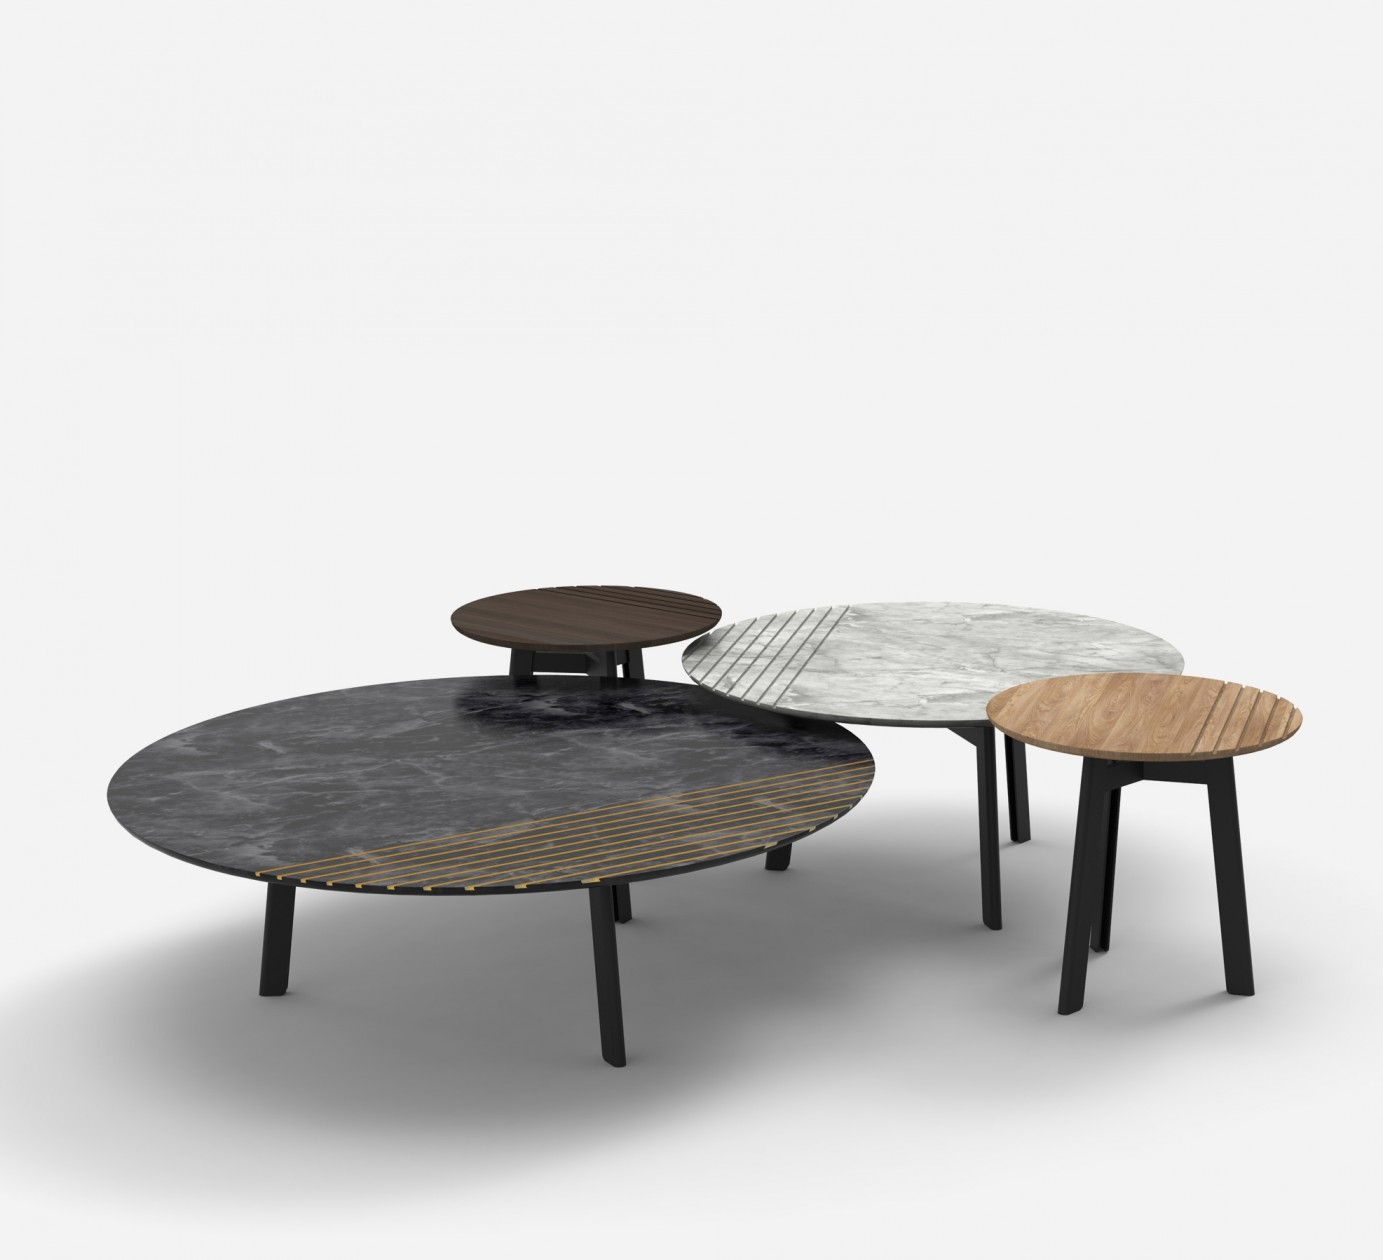 GROOVE Alain Gilles - Marble and wood side table